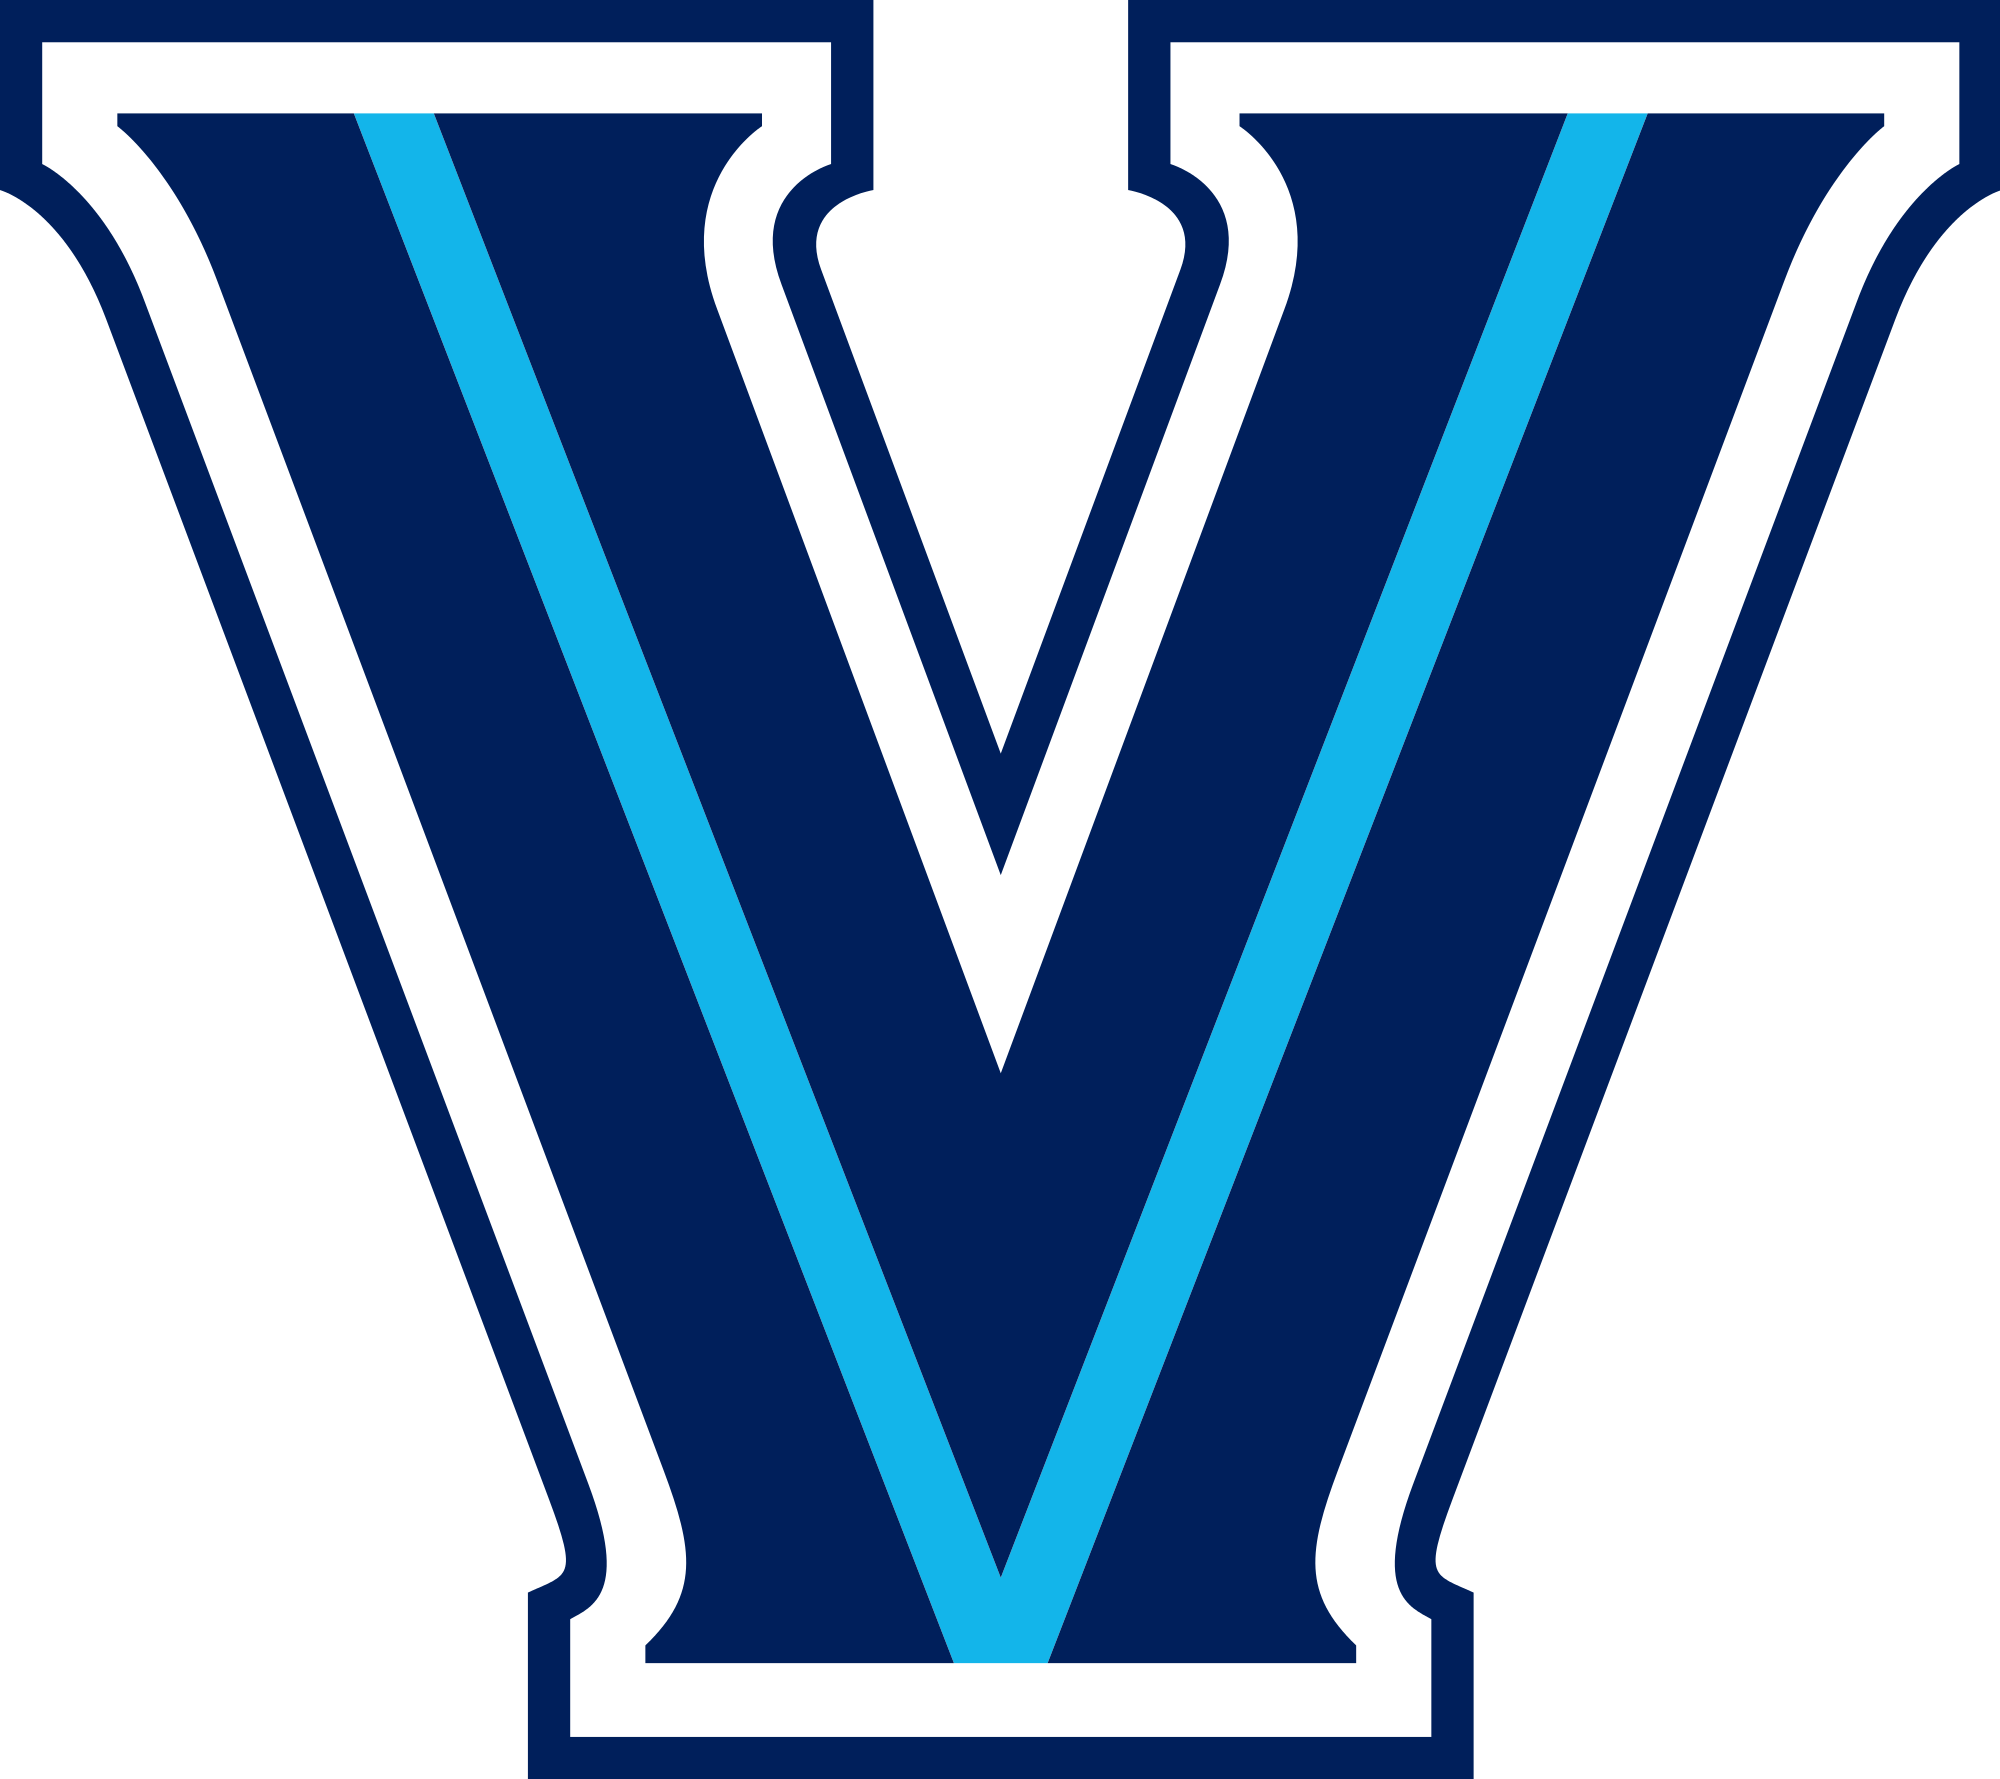 Basket Ball Ncaa Team Villanova Villanova Wildcats Villanova Wildcats Logo